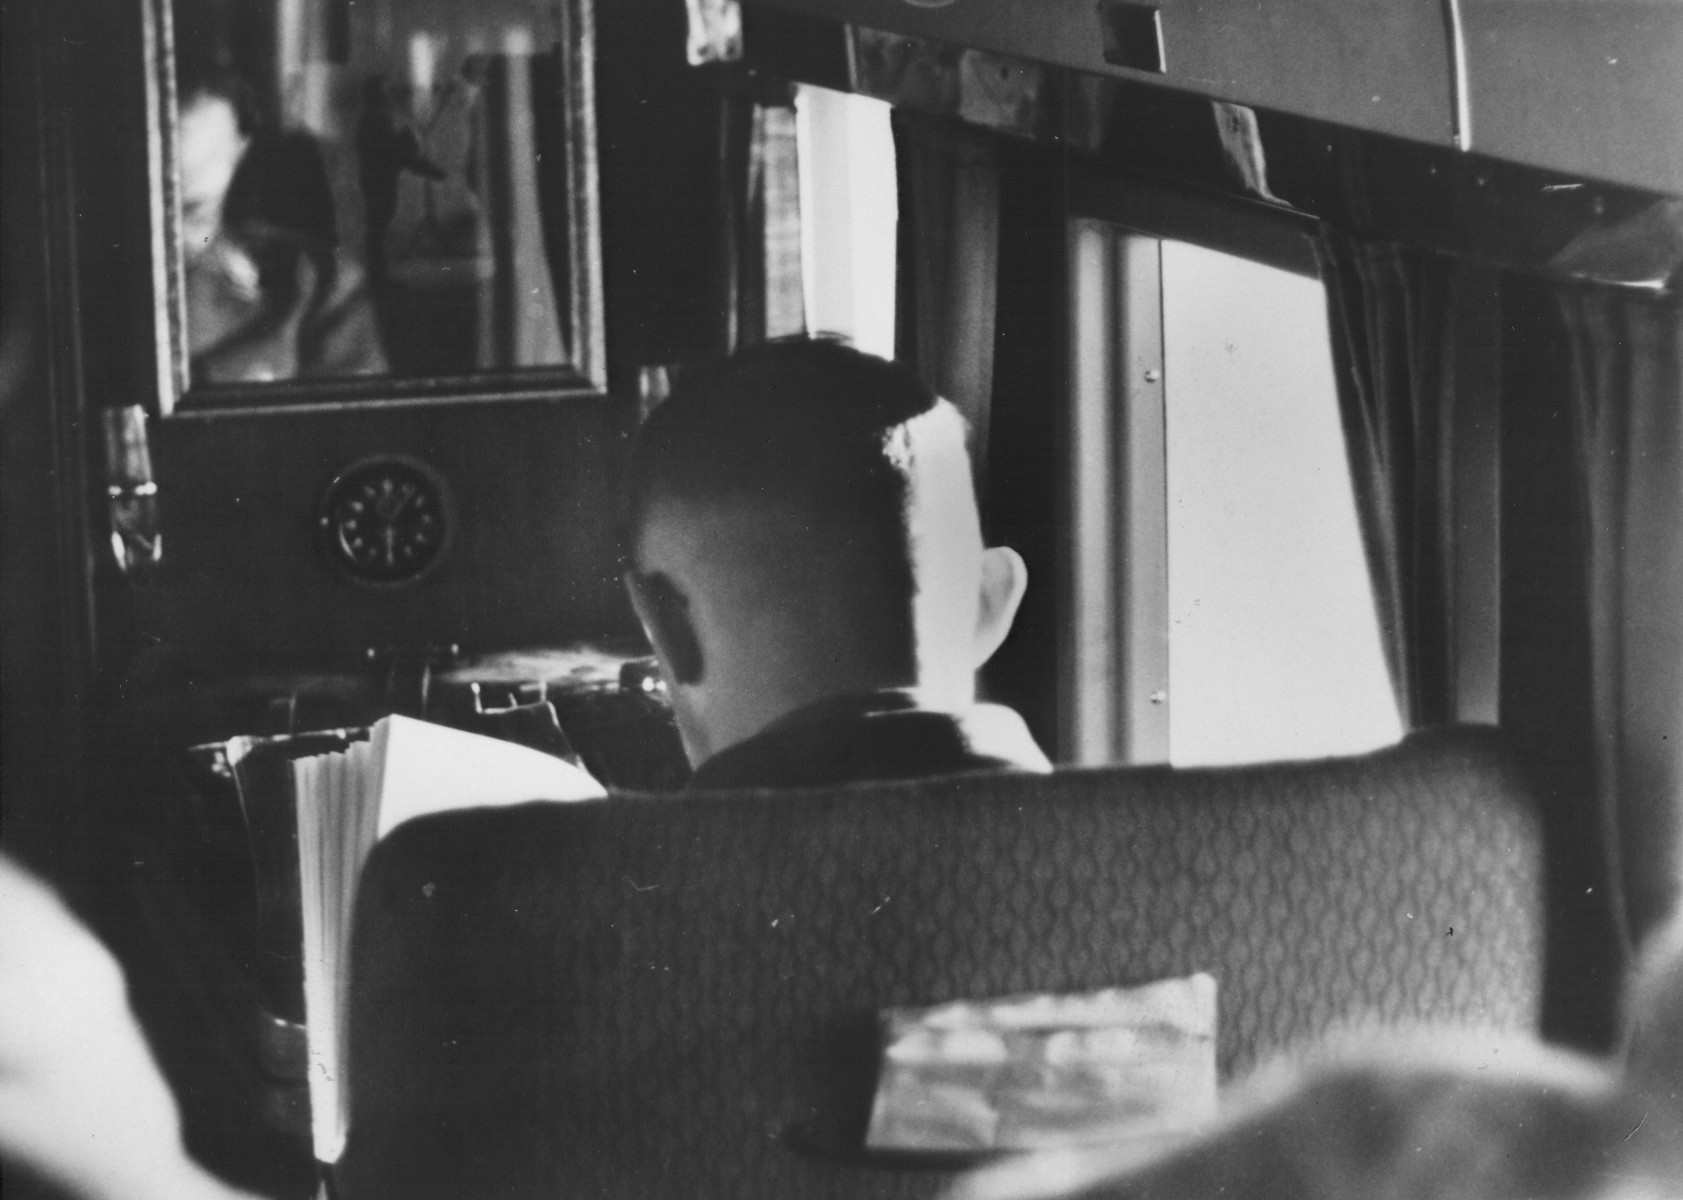 Reichsfuehrer-SS Heinrich Himmler reading in a private compartment of a plane or train.